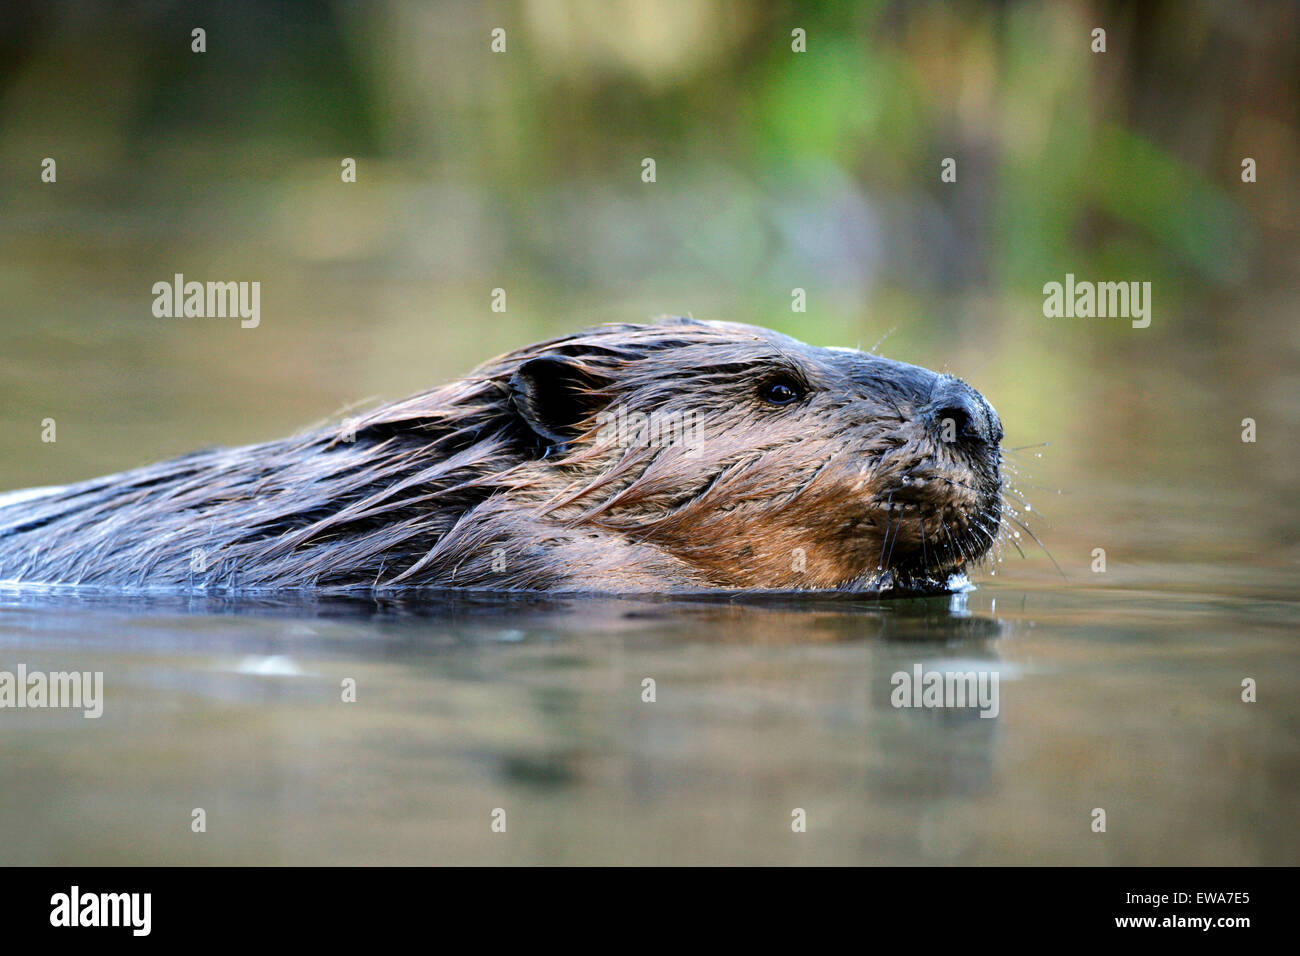 Beaver large adult swimming in pond, portrait close up - Stock Image